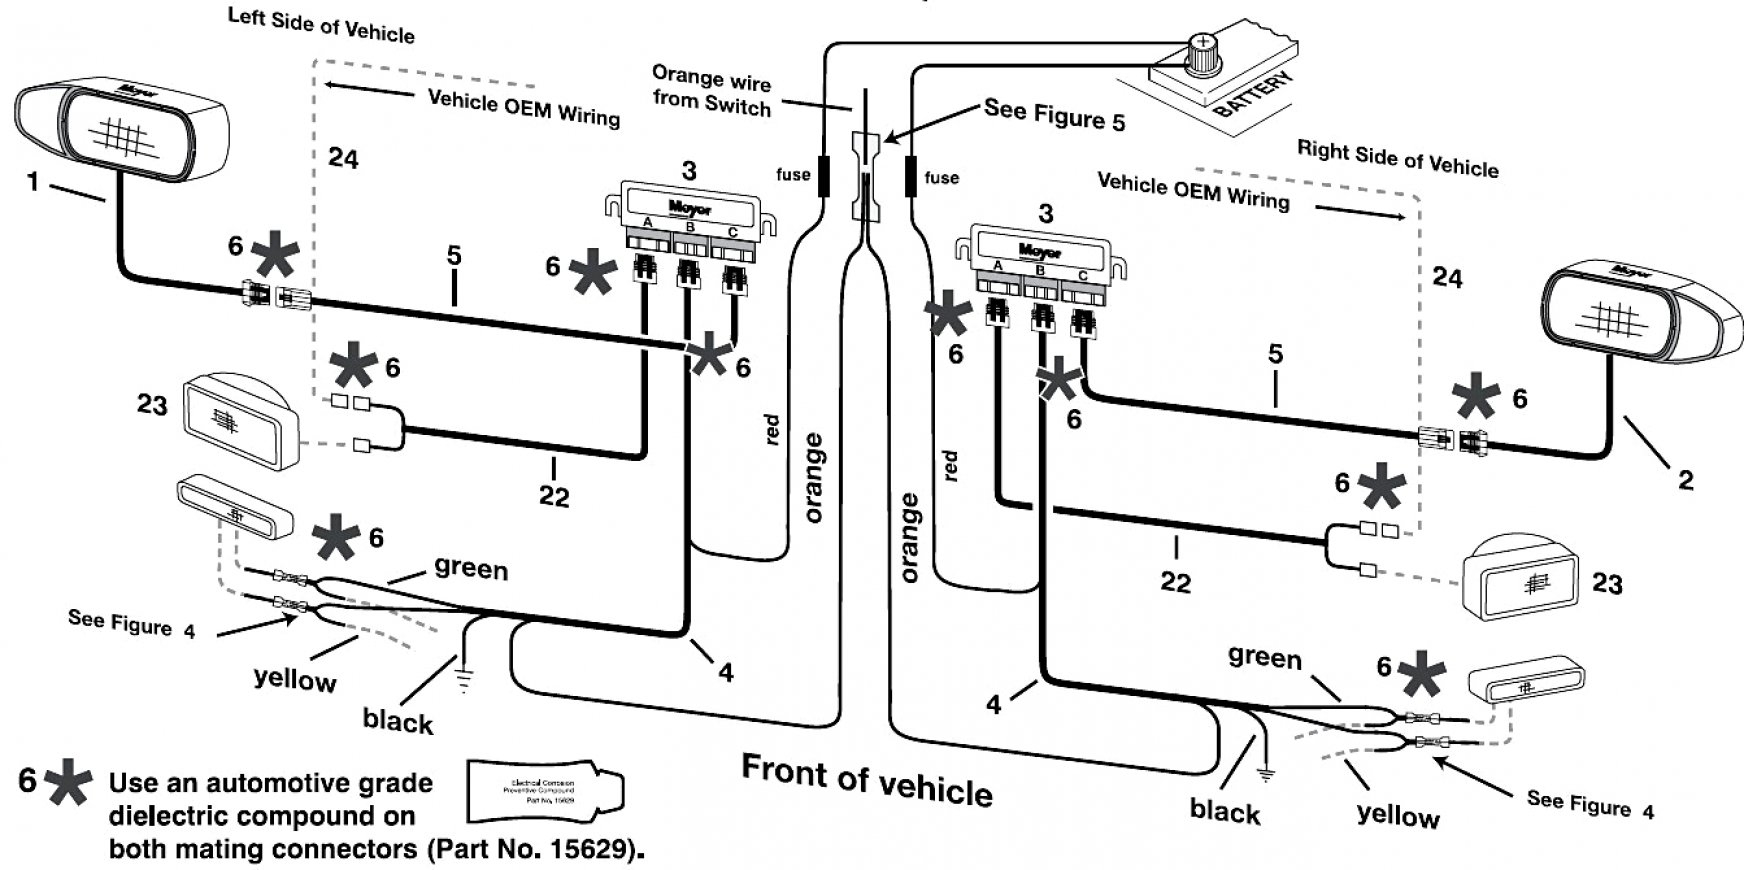 Meyer Snow Plow Wiring Diagram For Headlights | Wiring Diagram - Meyers Snow Plows Wiring Diagram